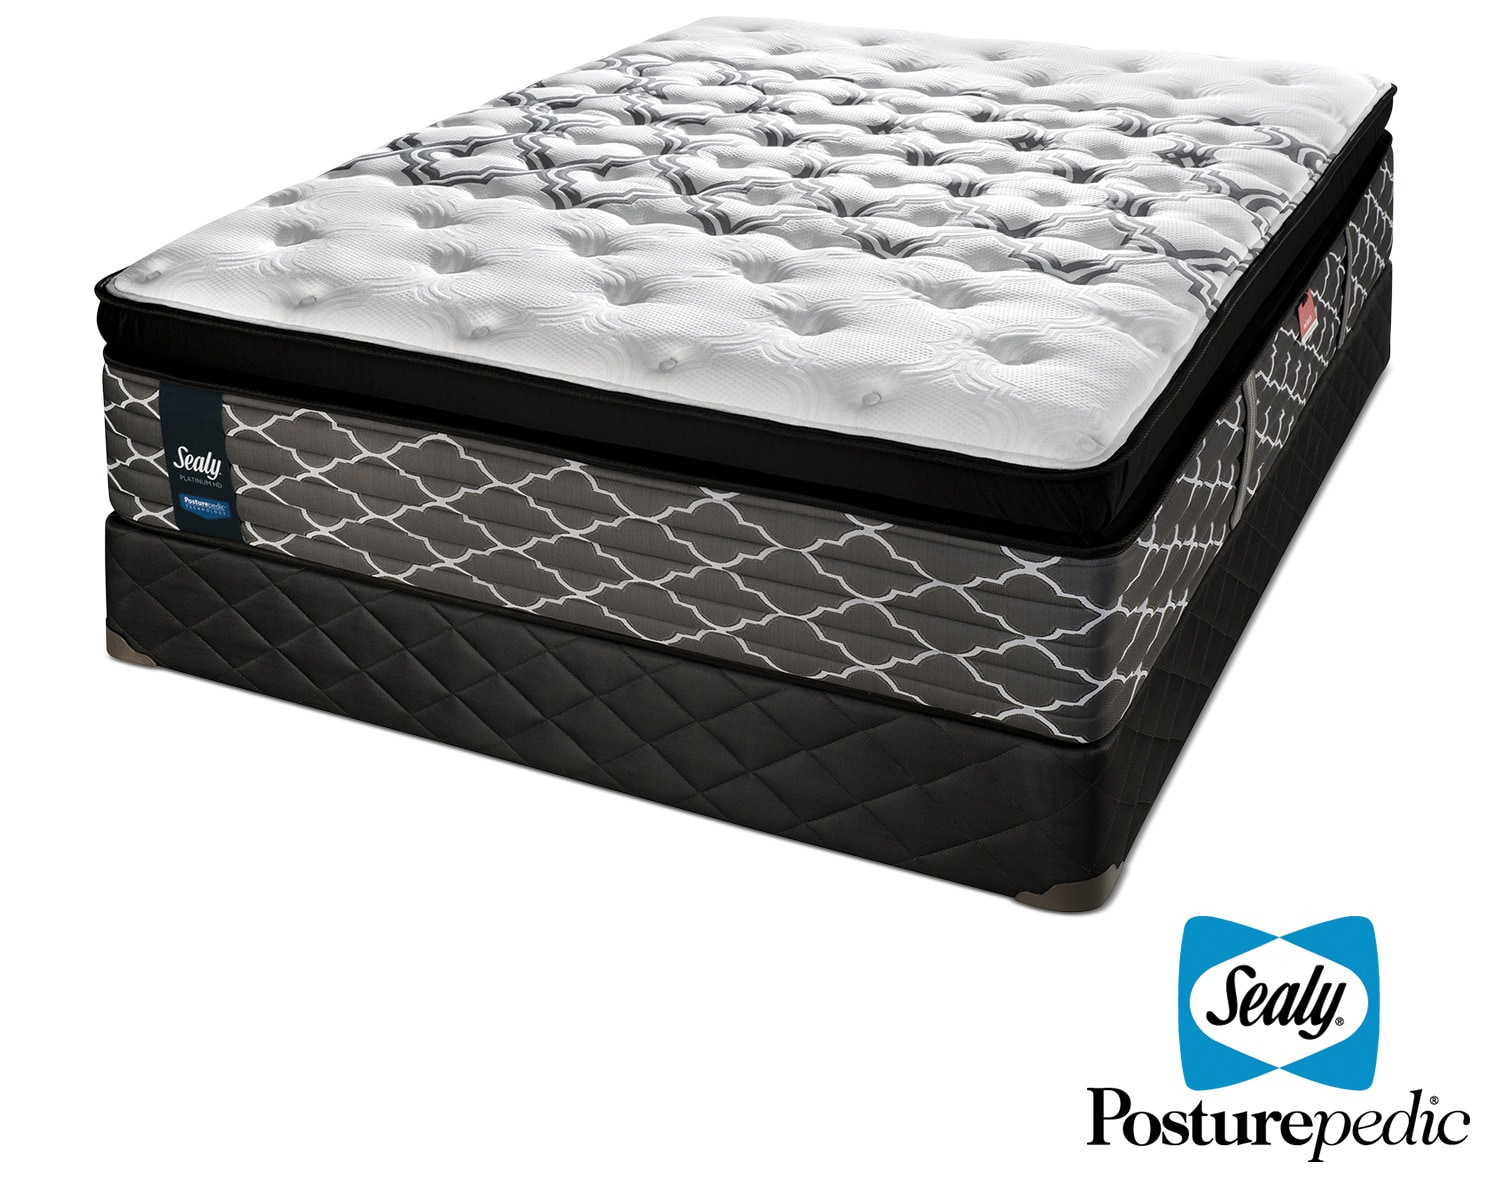 The Sealy Endless Night Hybrid Cushion Firm Mattress Collection